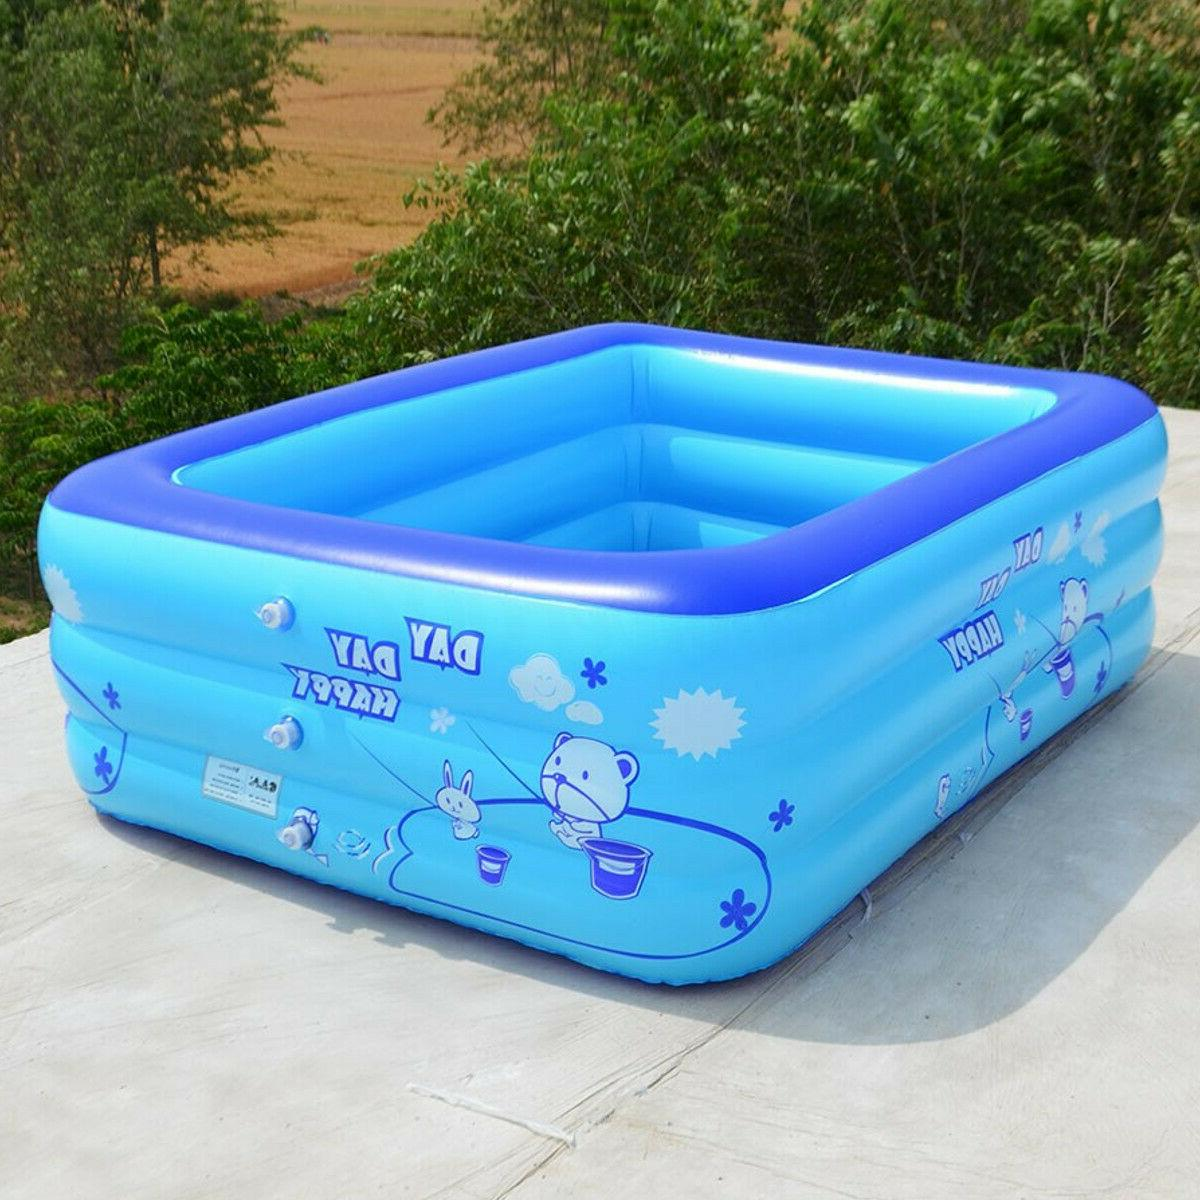 Summer Inflatable Pool Fun Play